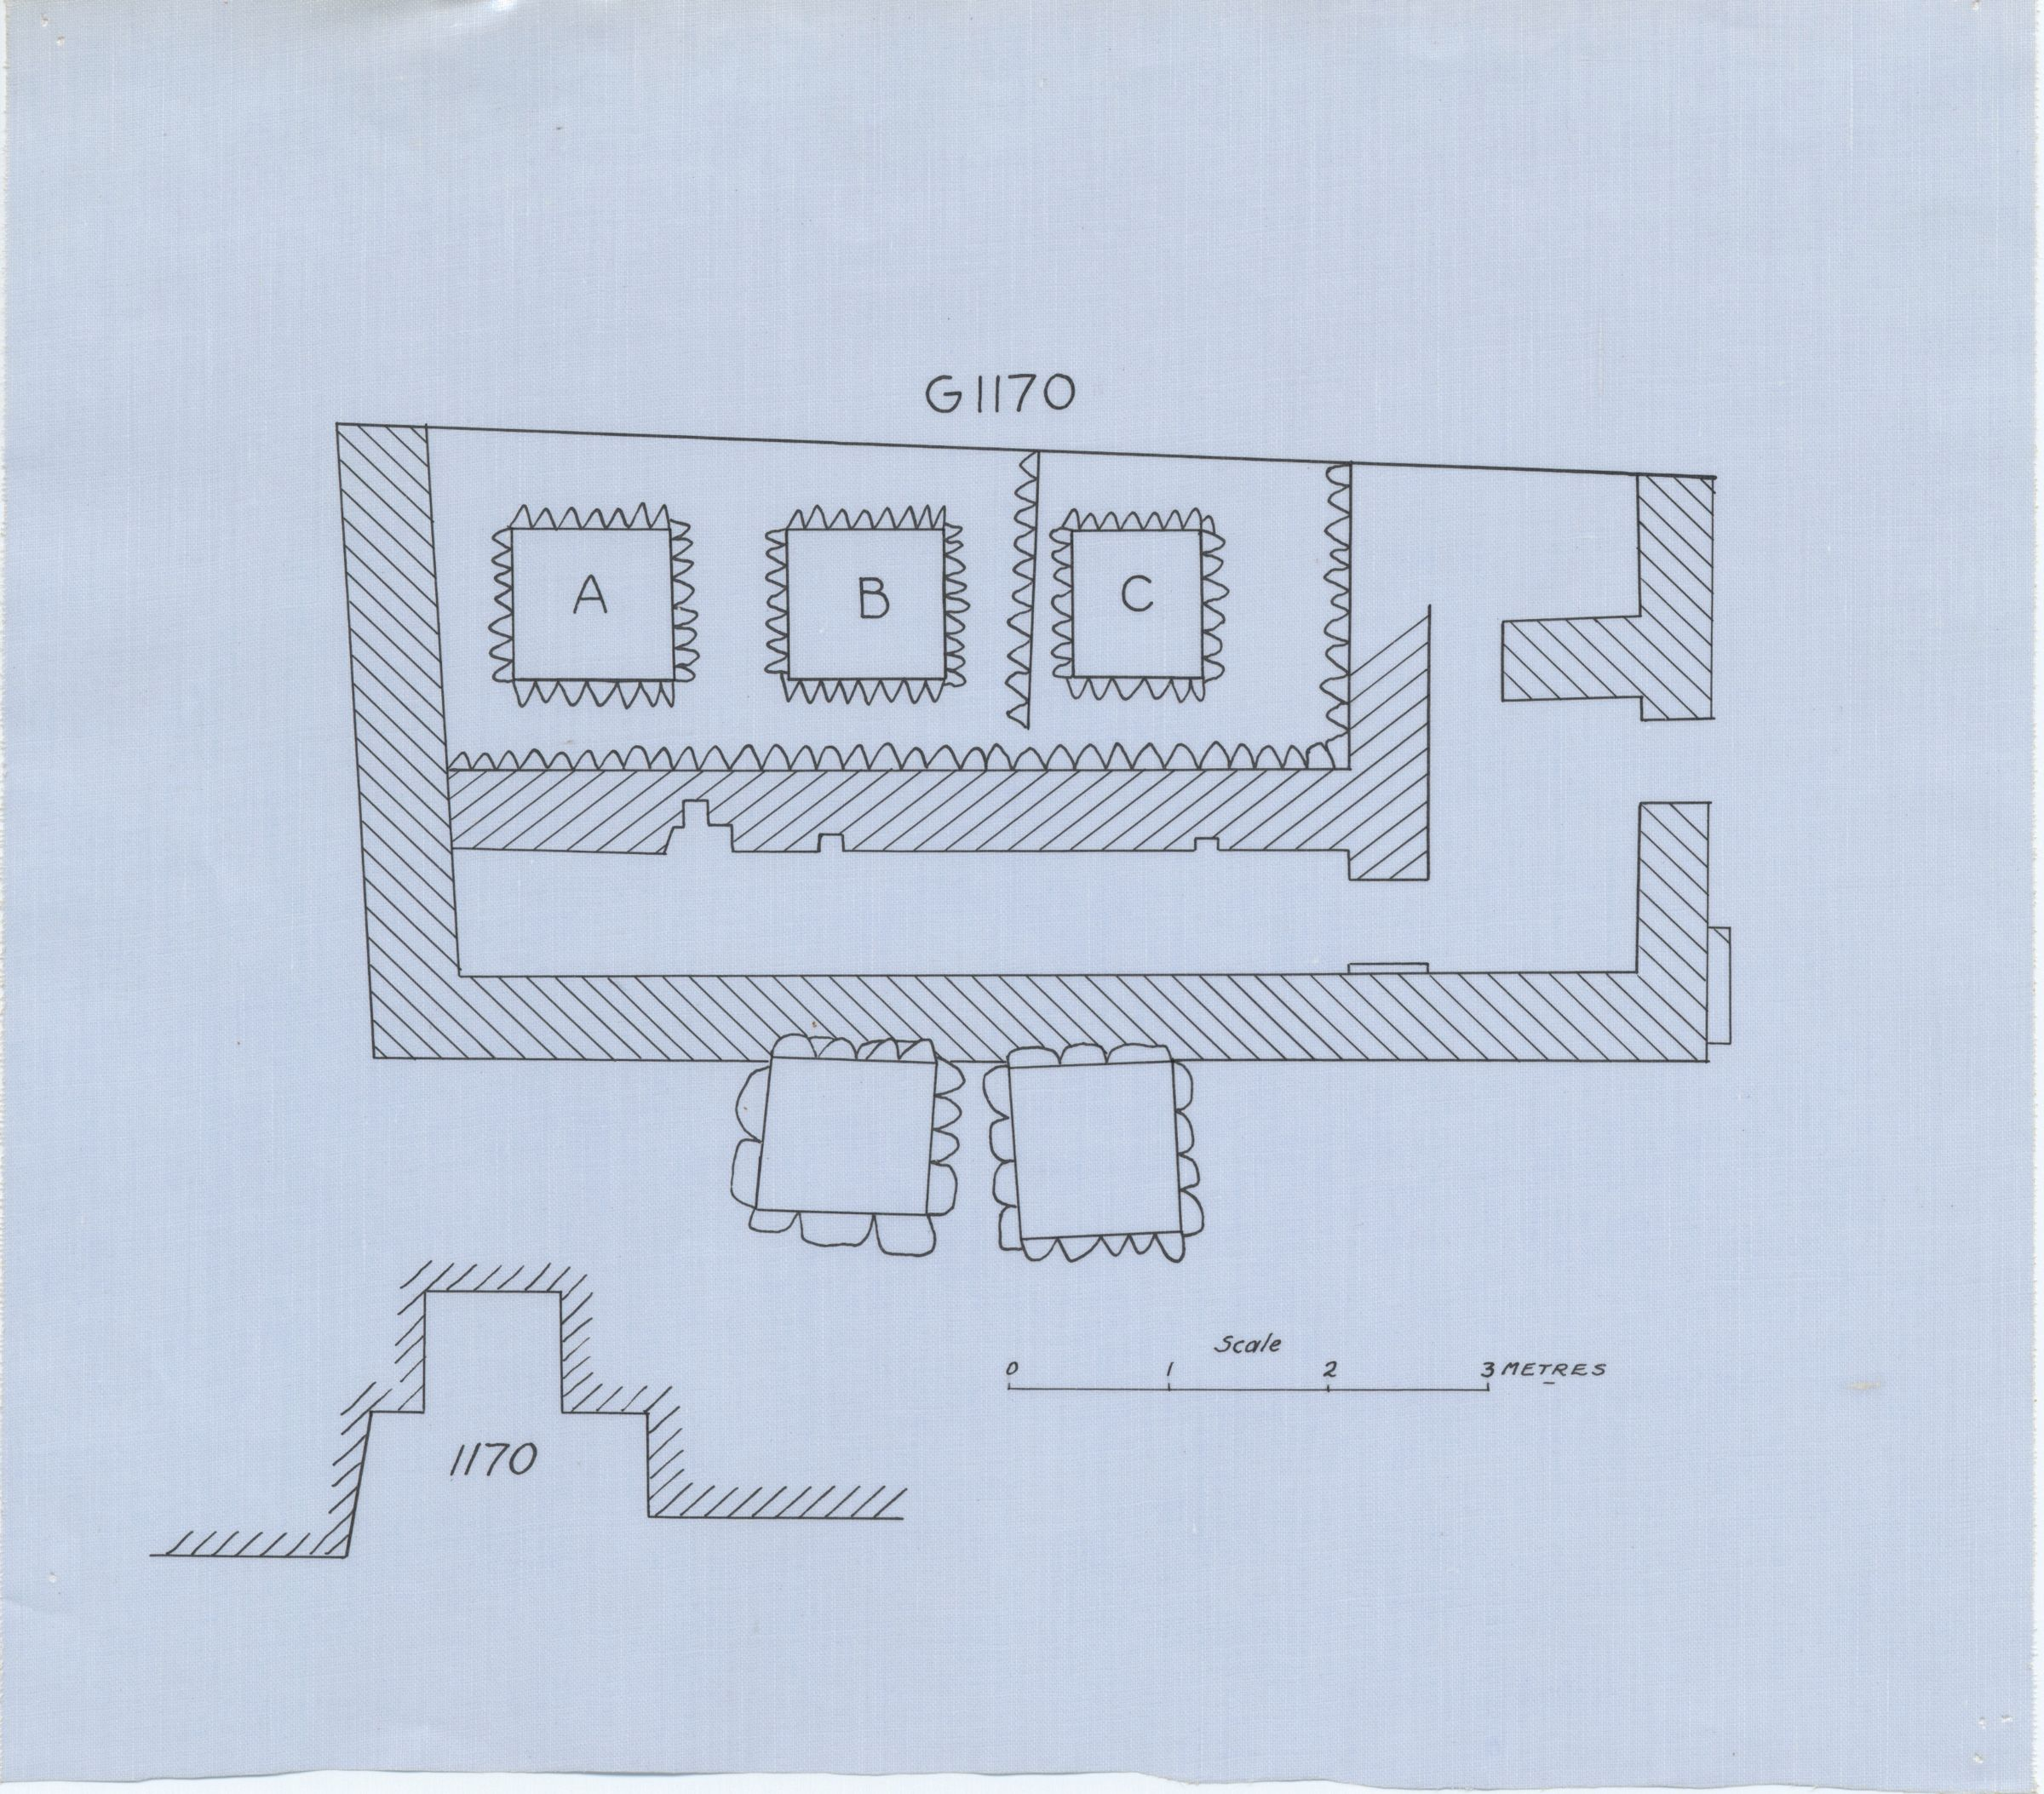 Maps and plans: G 1170, Plan